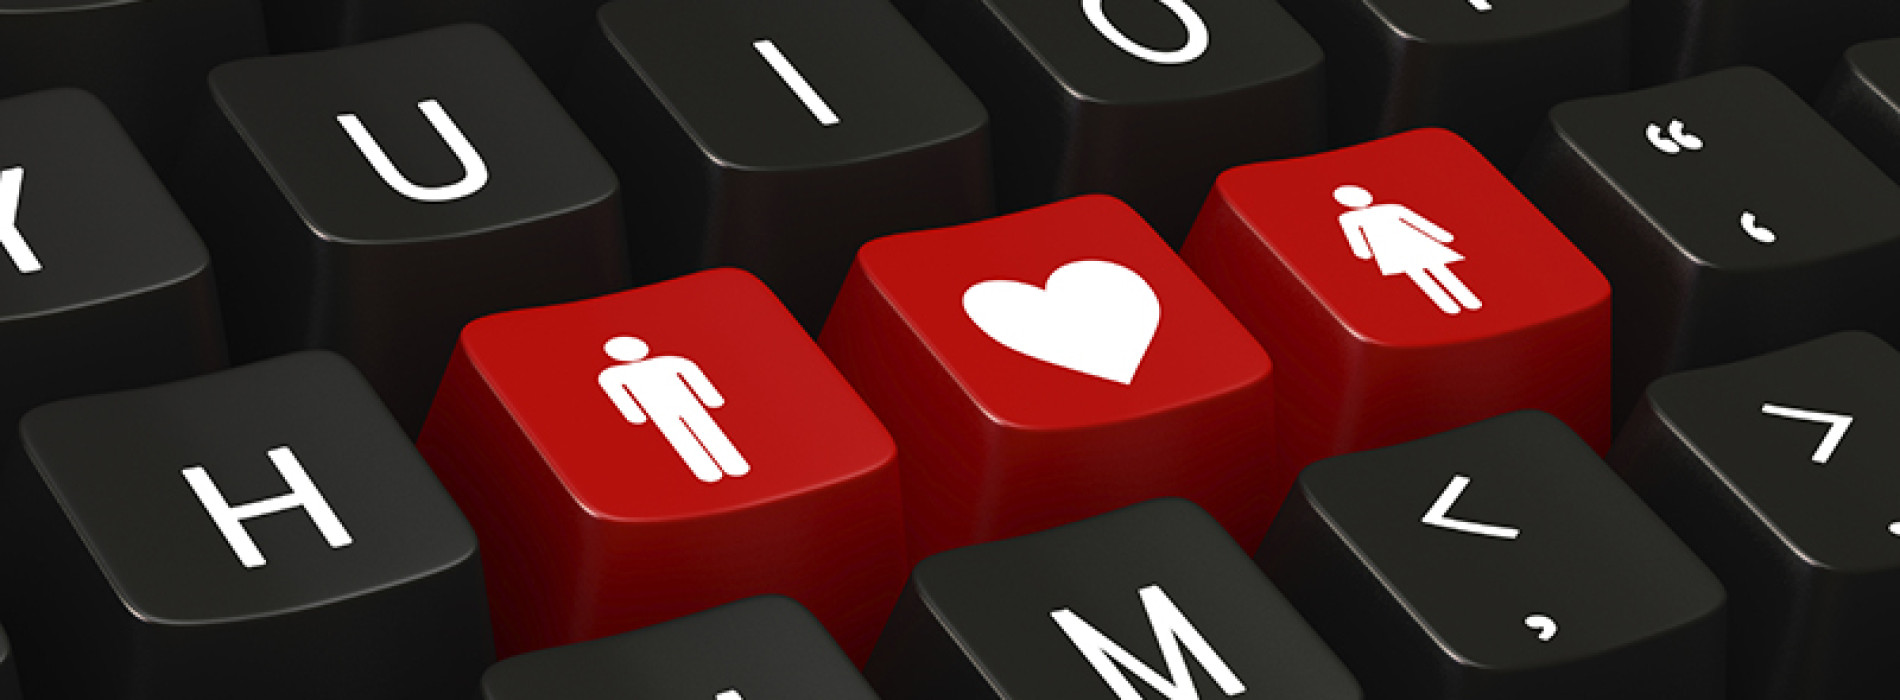 Disability dating sites: we round up the best